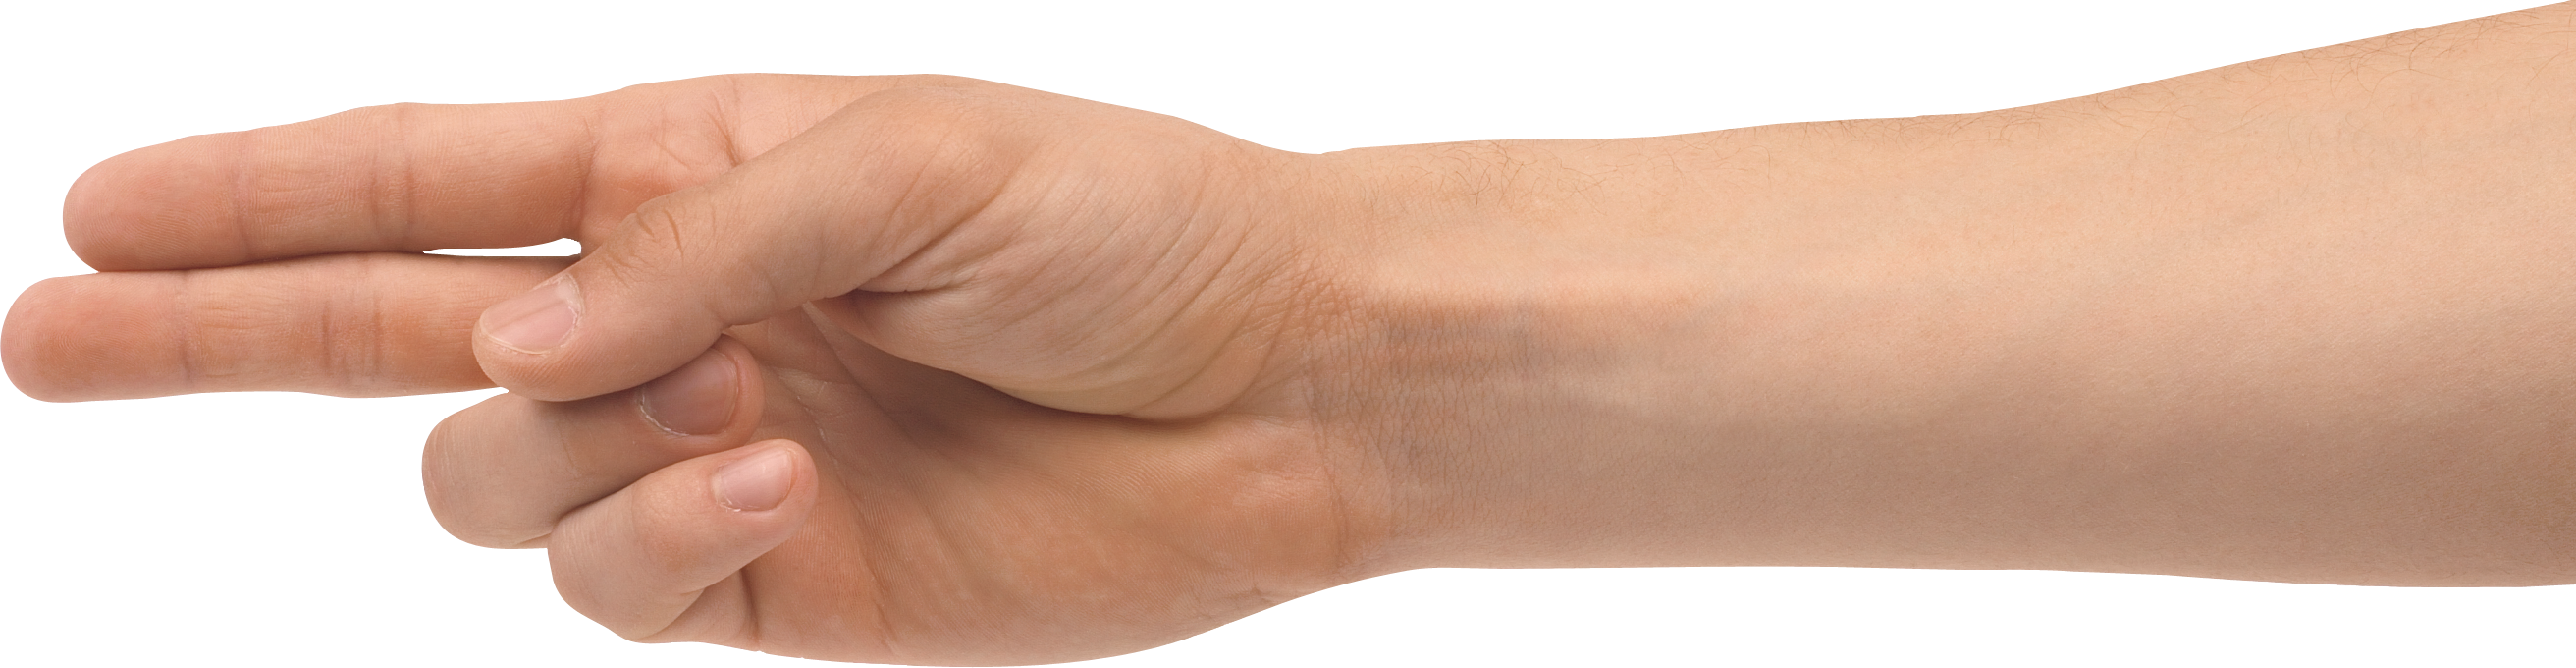 uploads hands hands PNG941 64